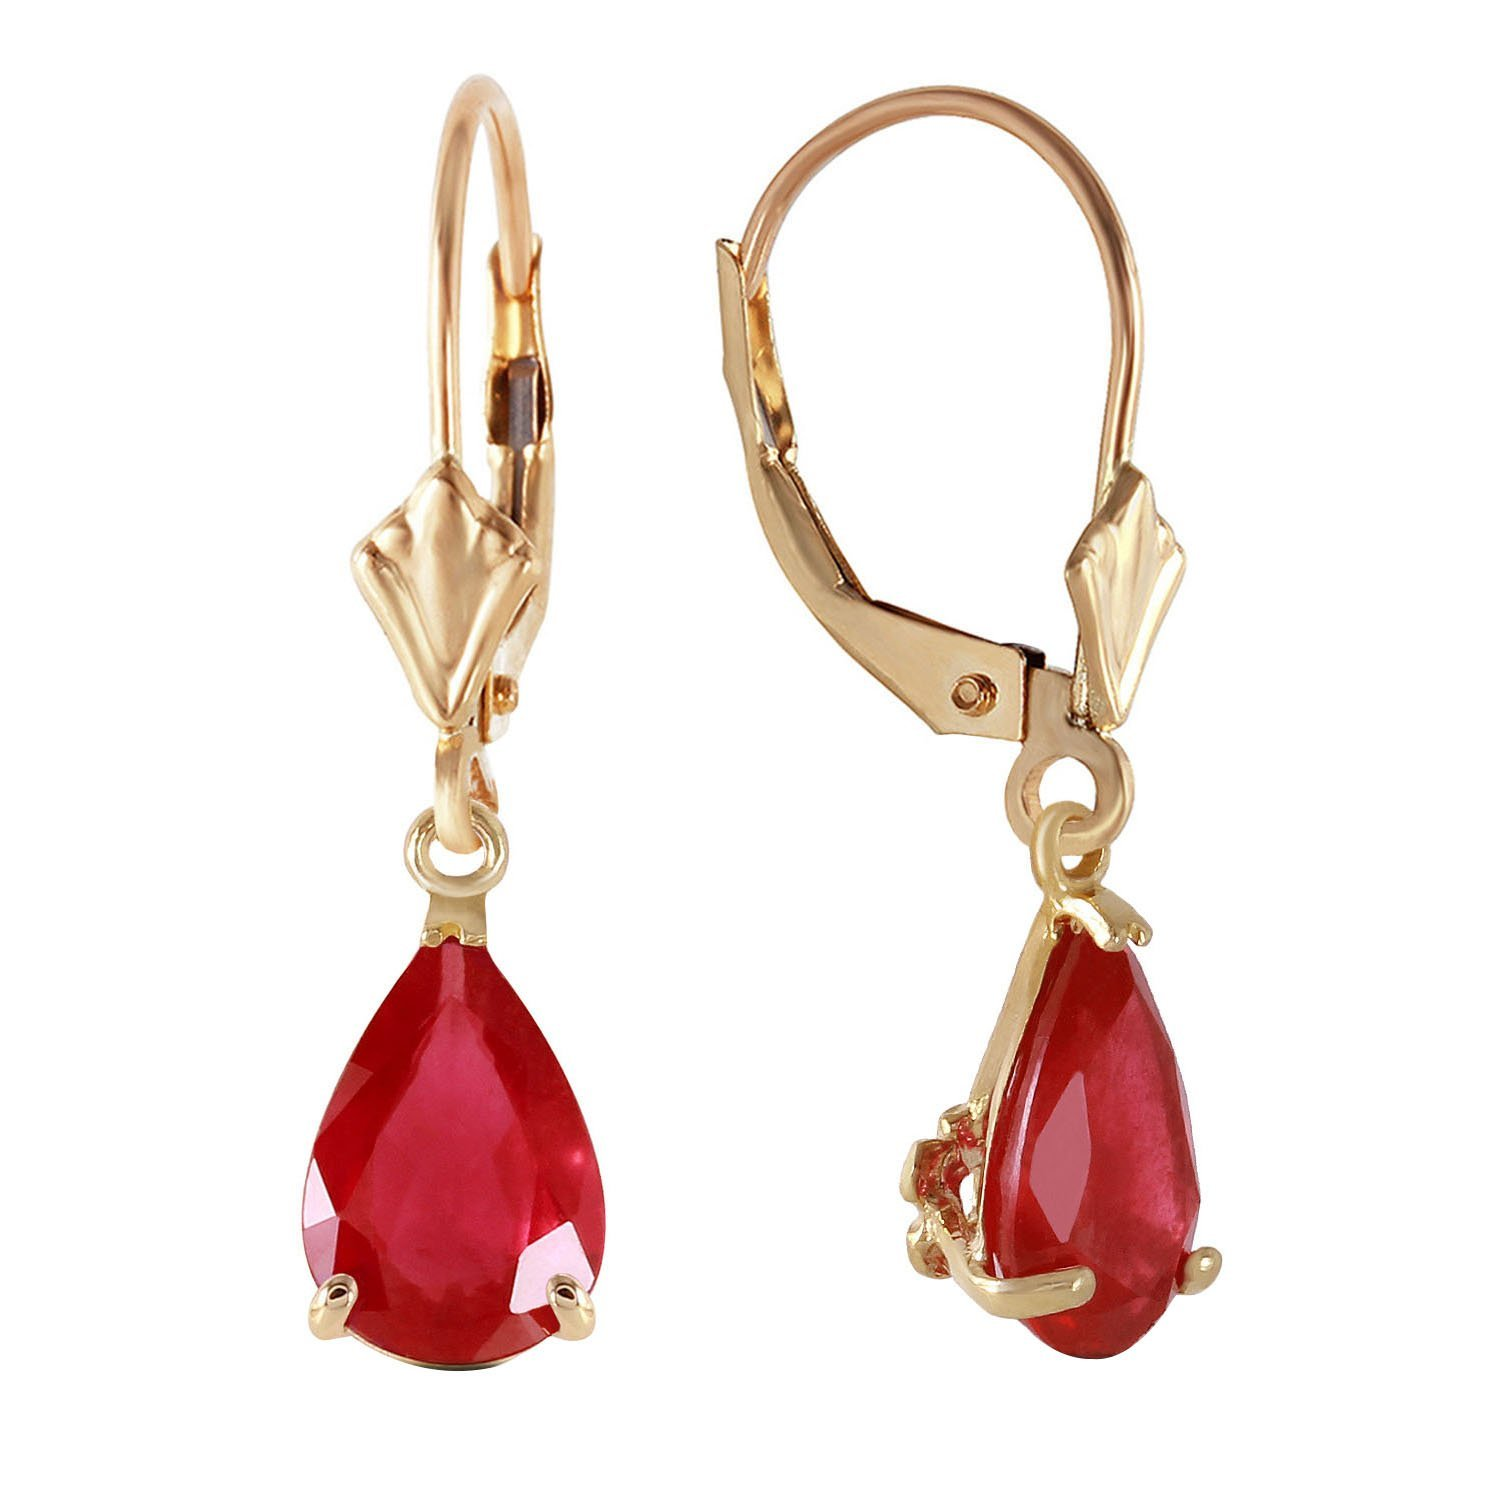 3.5 CTW 14k Solid Gold Leverback Earrings with Natural Pear-shaped Ruby by 💎Galaxy Gold💎 (Image #2)